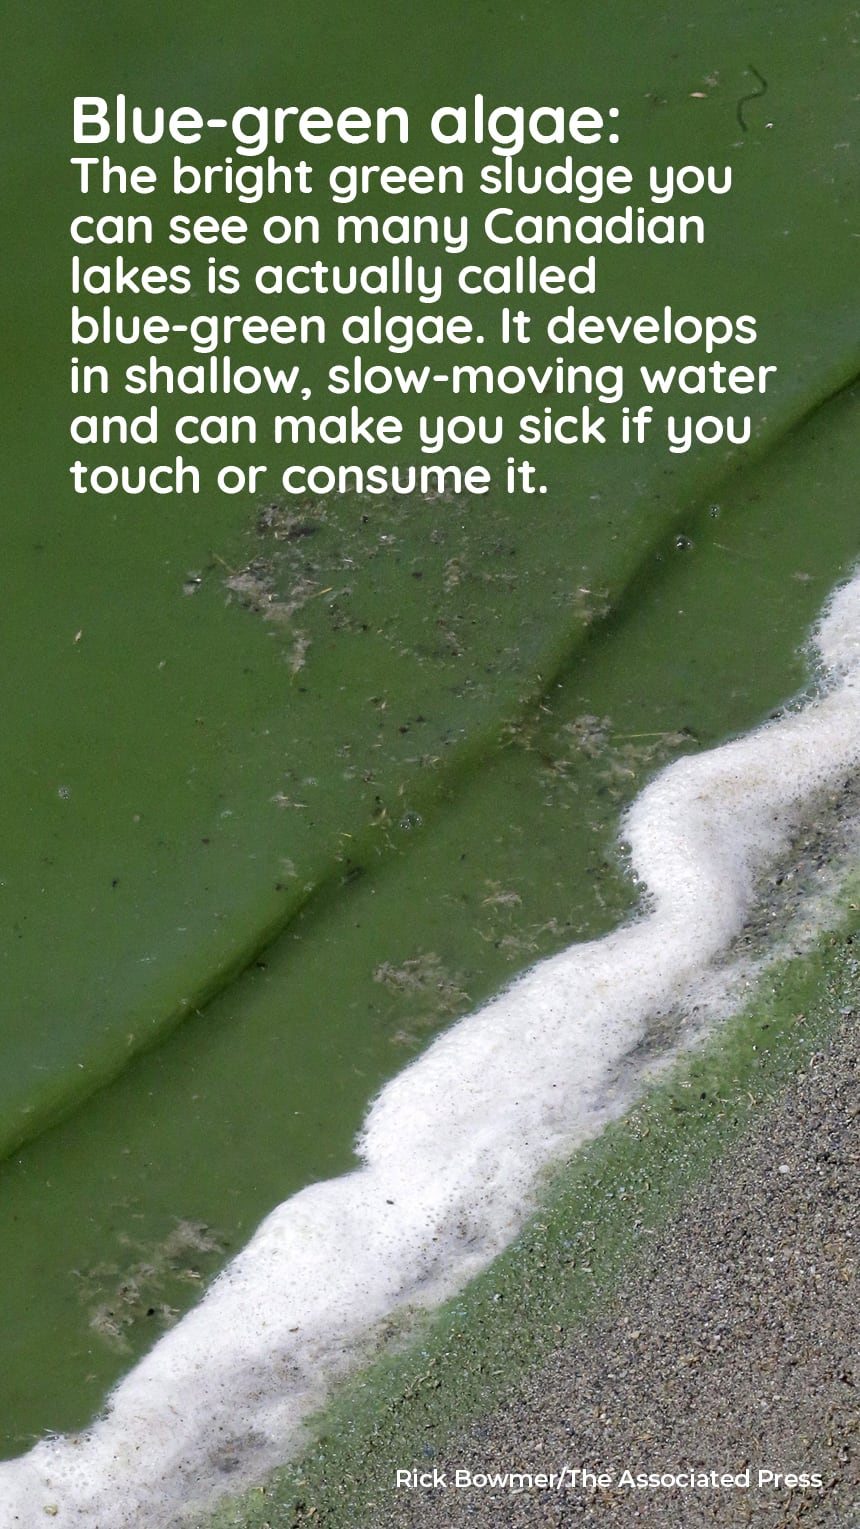 image: blue/green water on a beach. Text: Blue-green algae: The bright green sludge you can see on many Canadian lakes is actually called blue-green algae. It develops in shallow, slow-moving water and can make you sick if you touch or consume it.